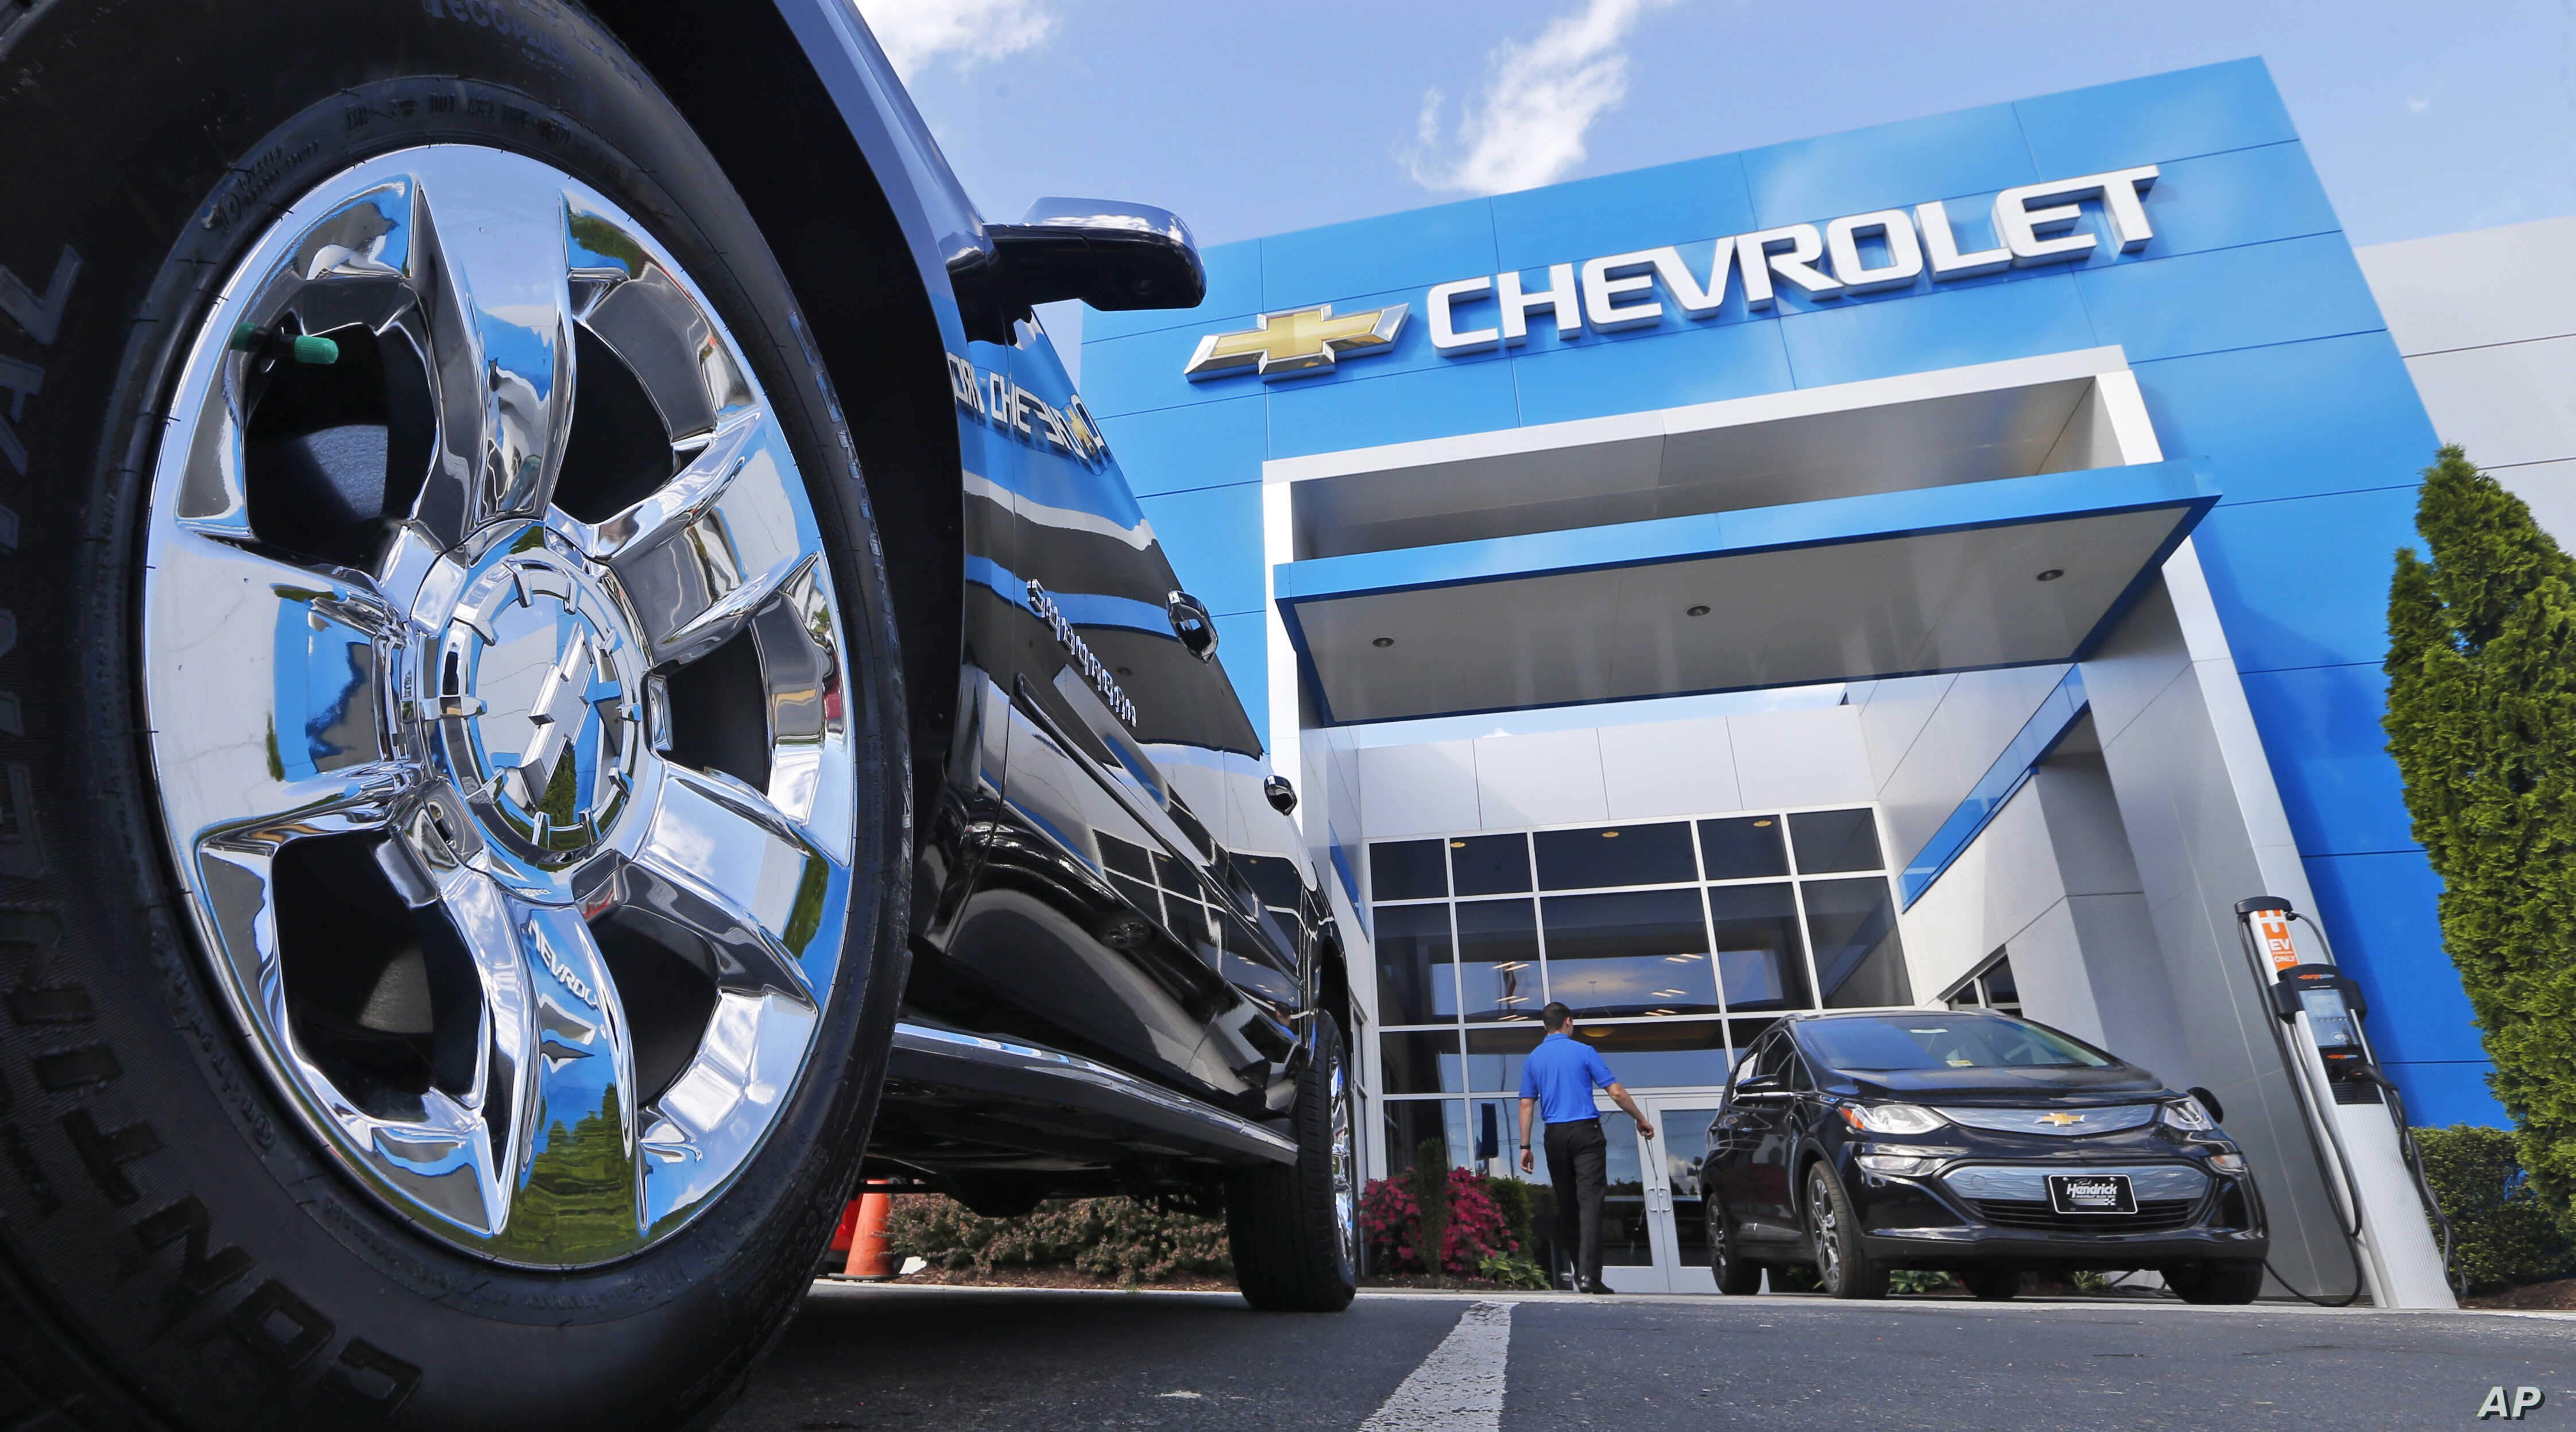 Us Automakers Bounce Back With Strong Sales In September Voice Of America English